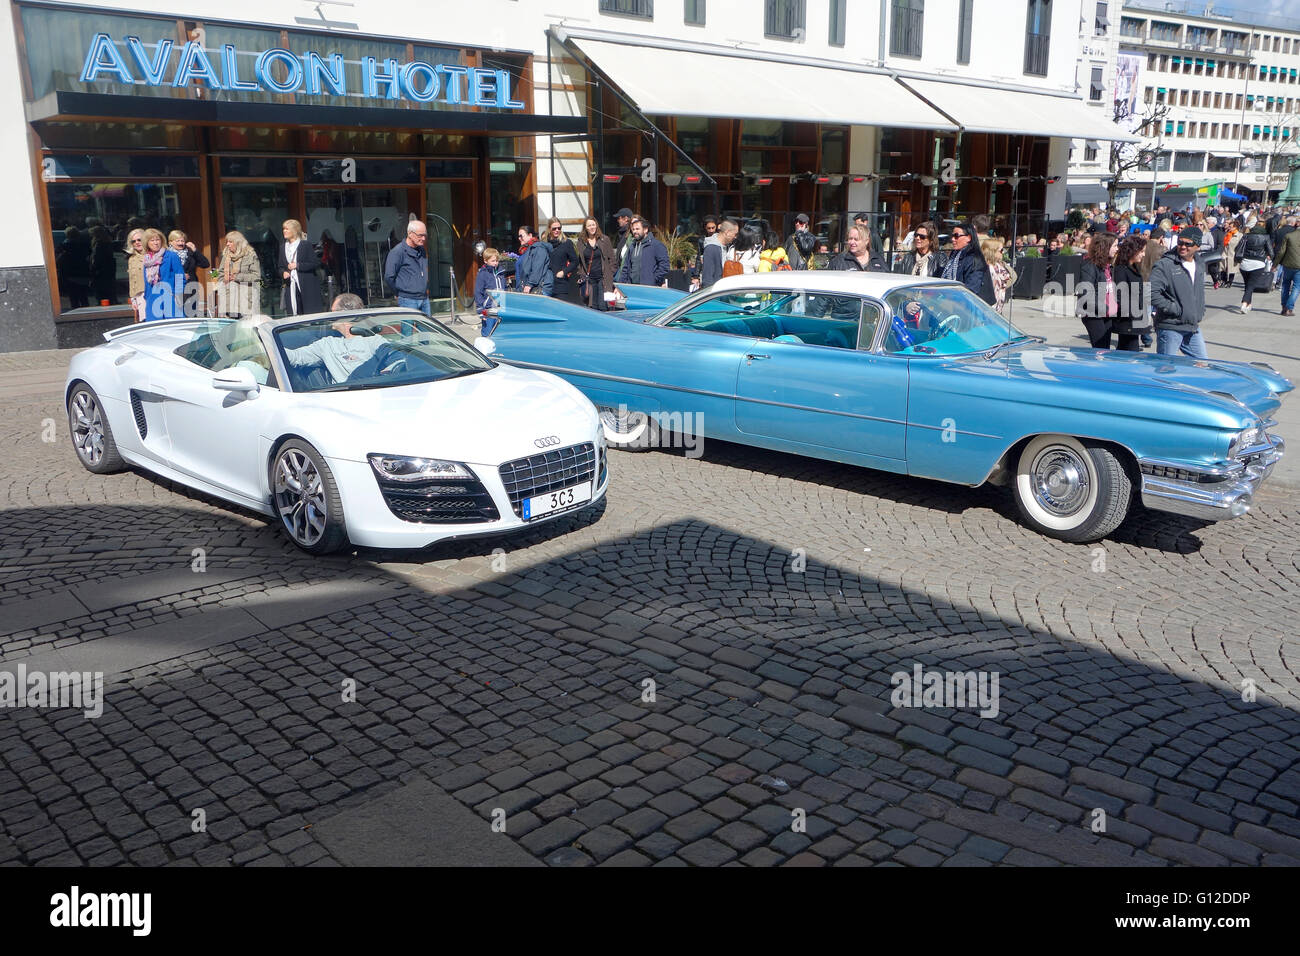 Brand new AUDI R8 from 2016 and CADILLAC DE VILLE from 1959 with Swedish licence plate - Stock Image